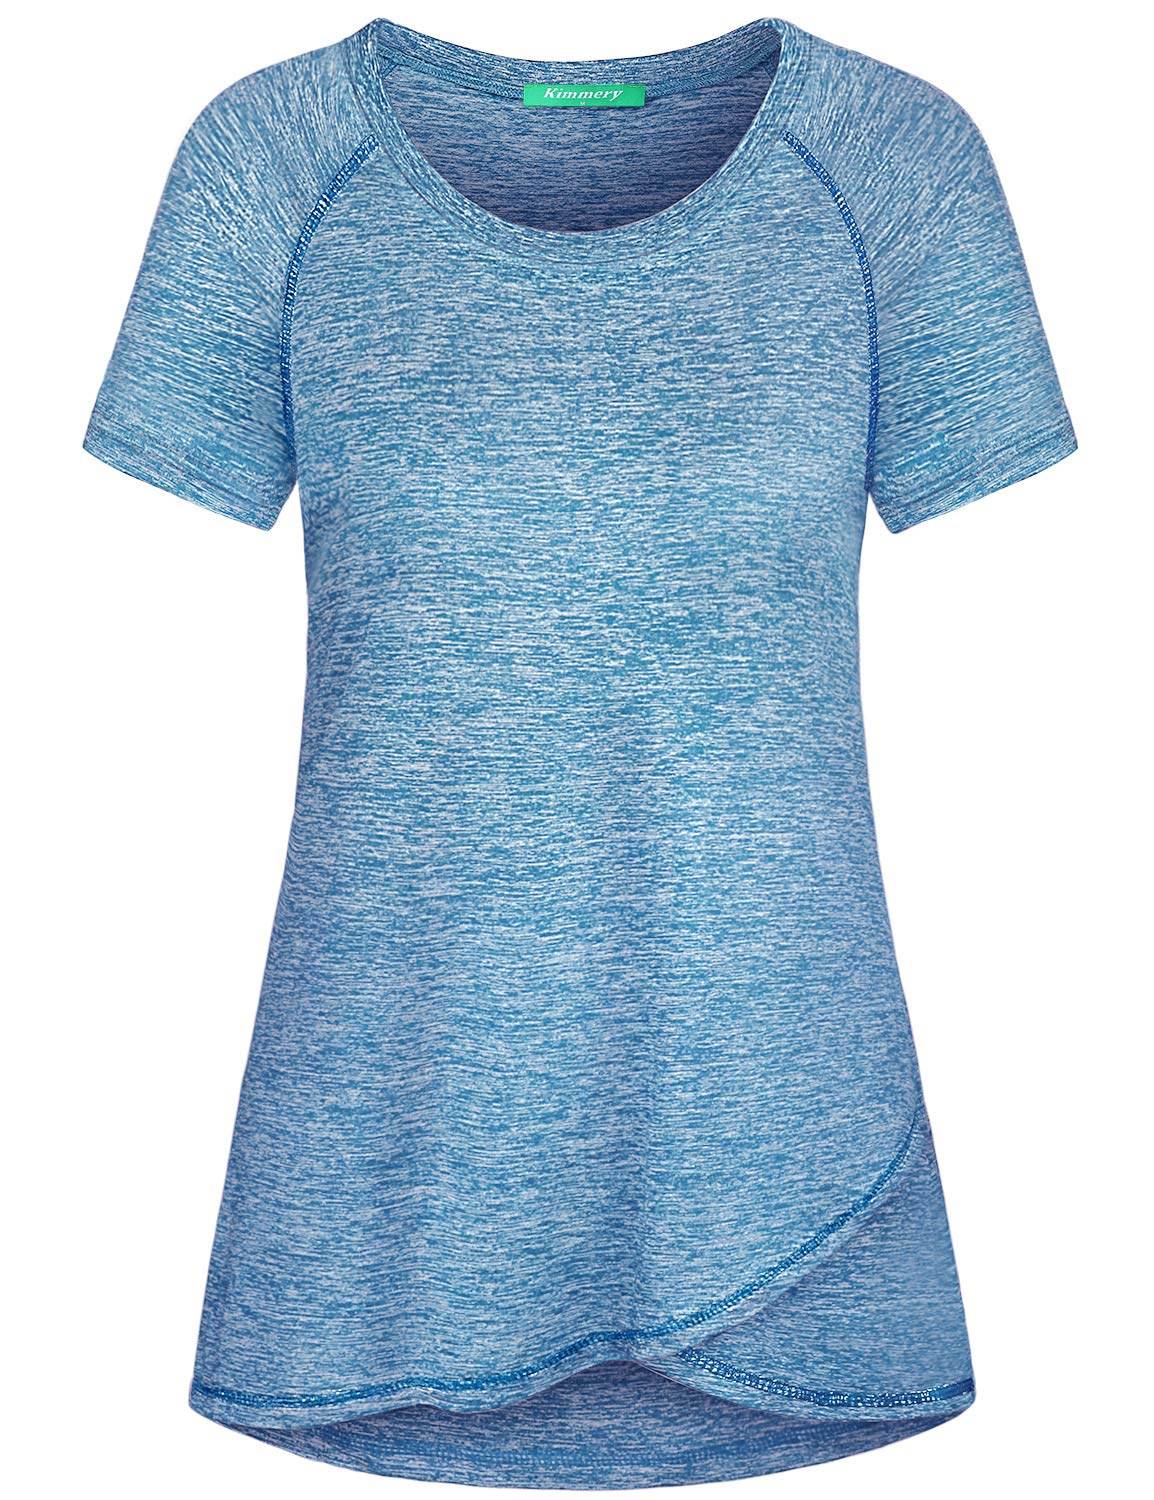 Kimmery Gym Shirts for Women, Dry Fit Wicking Raglan Sleeve T-Shirt Crewneck Stretchy Space Dye Casual Outdoors Sports Activewear Tops Fashion Running Jogging Fitness Hiking Active Tunics Blue Large